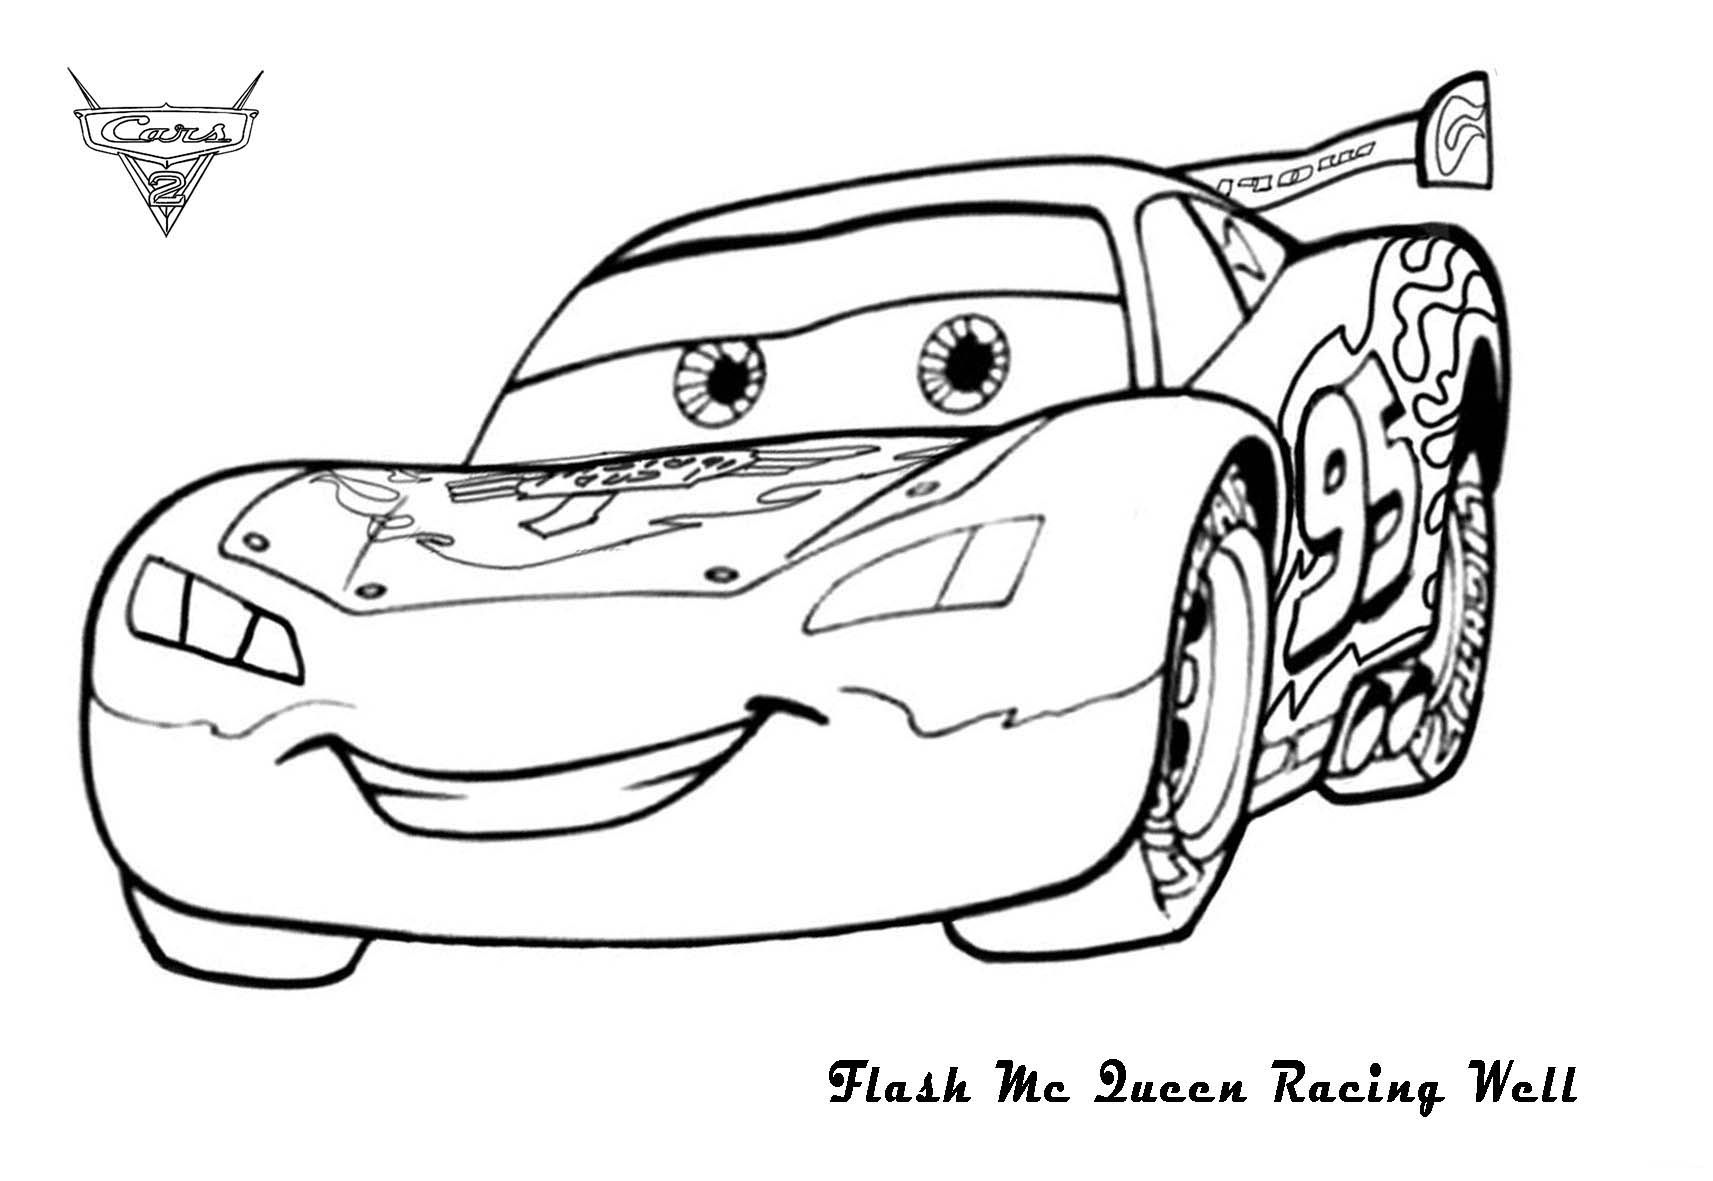 Dessin a colorier cars coloriages enfant pinterest coloriage coloriage enfant et flash - Coloriage cars a imprimer a4 ...